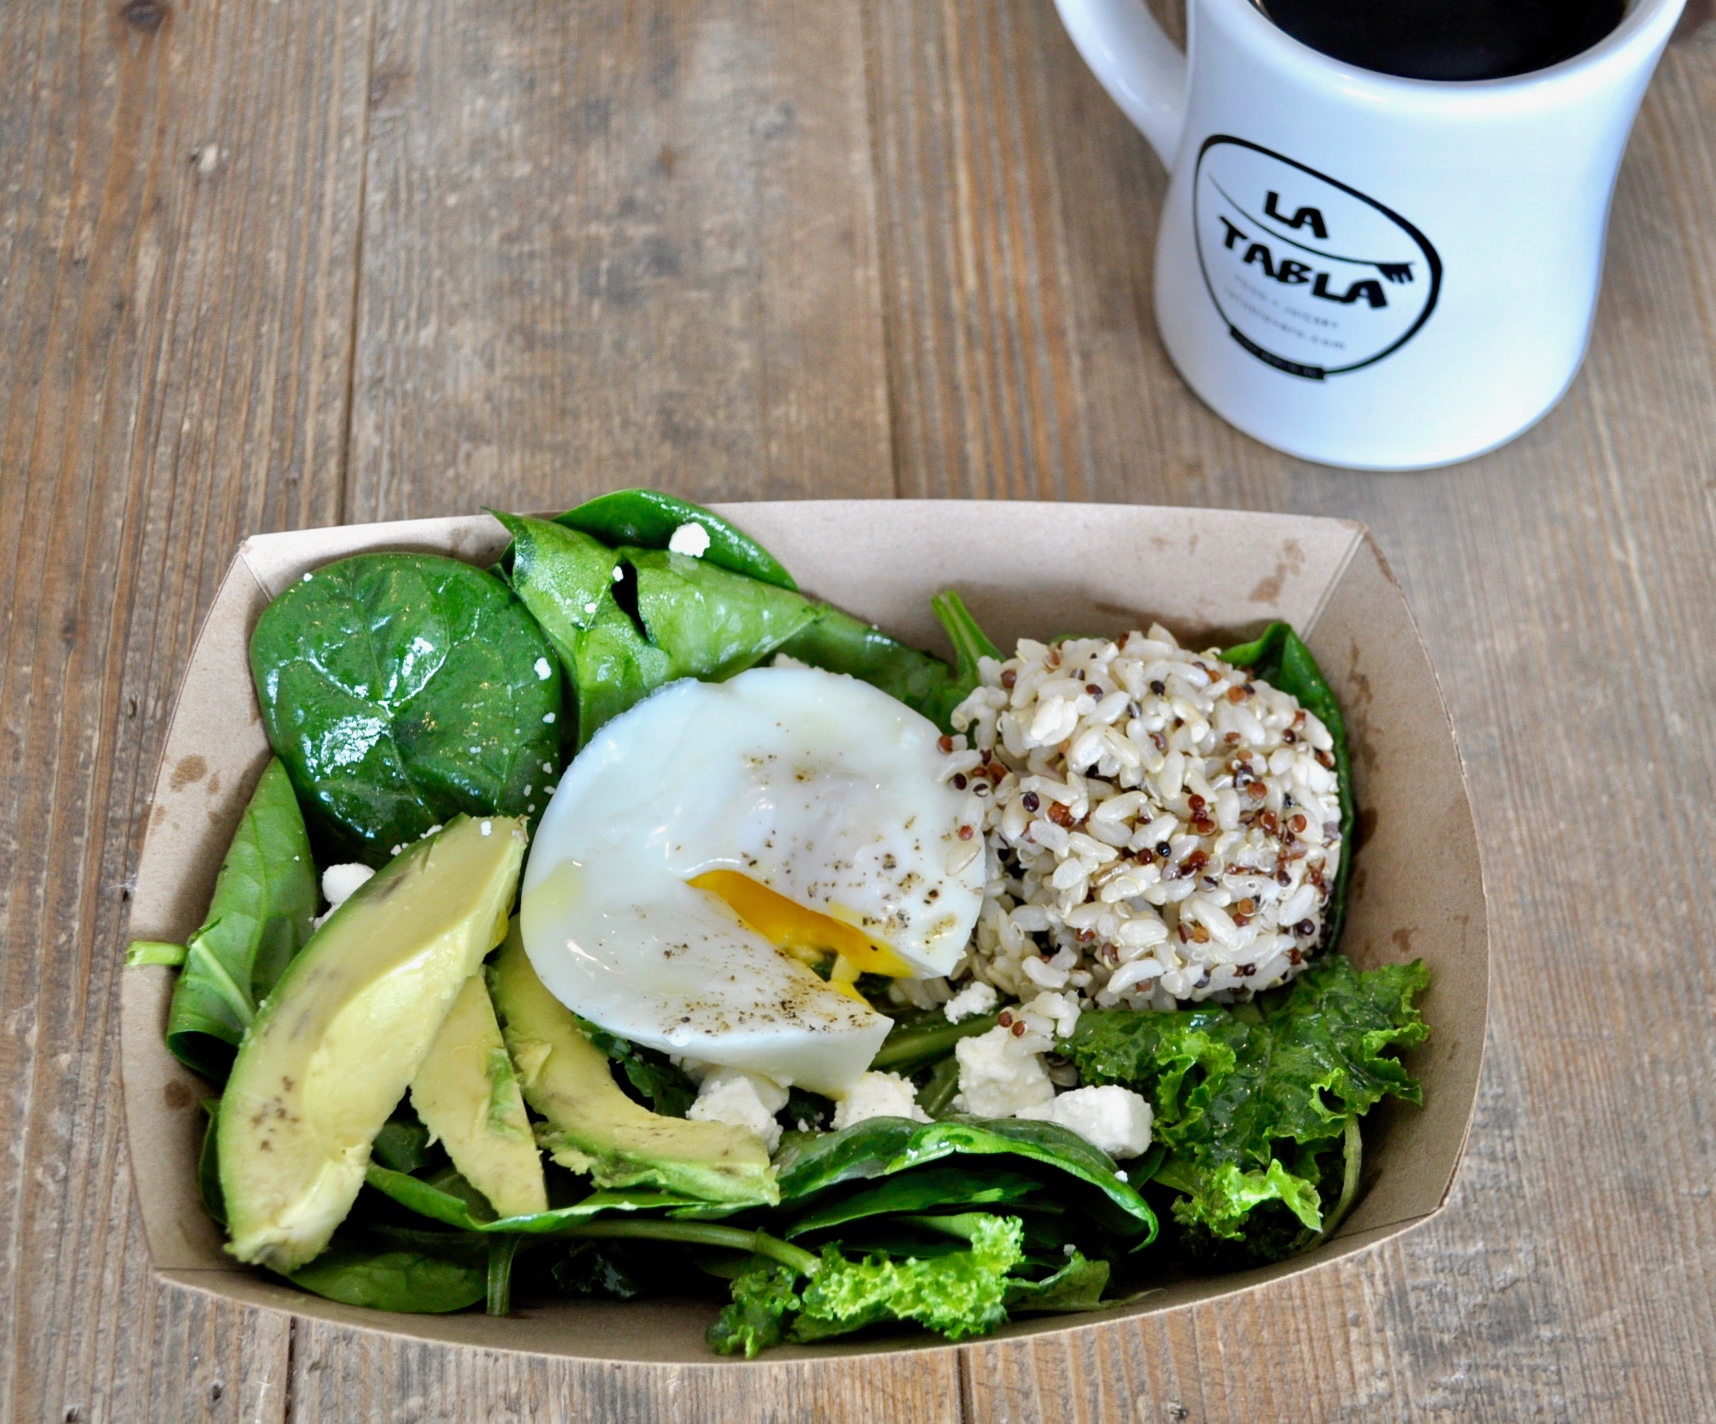 The Power Bowl 1egg ( 9am - 11am)